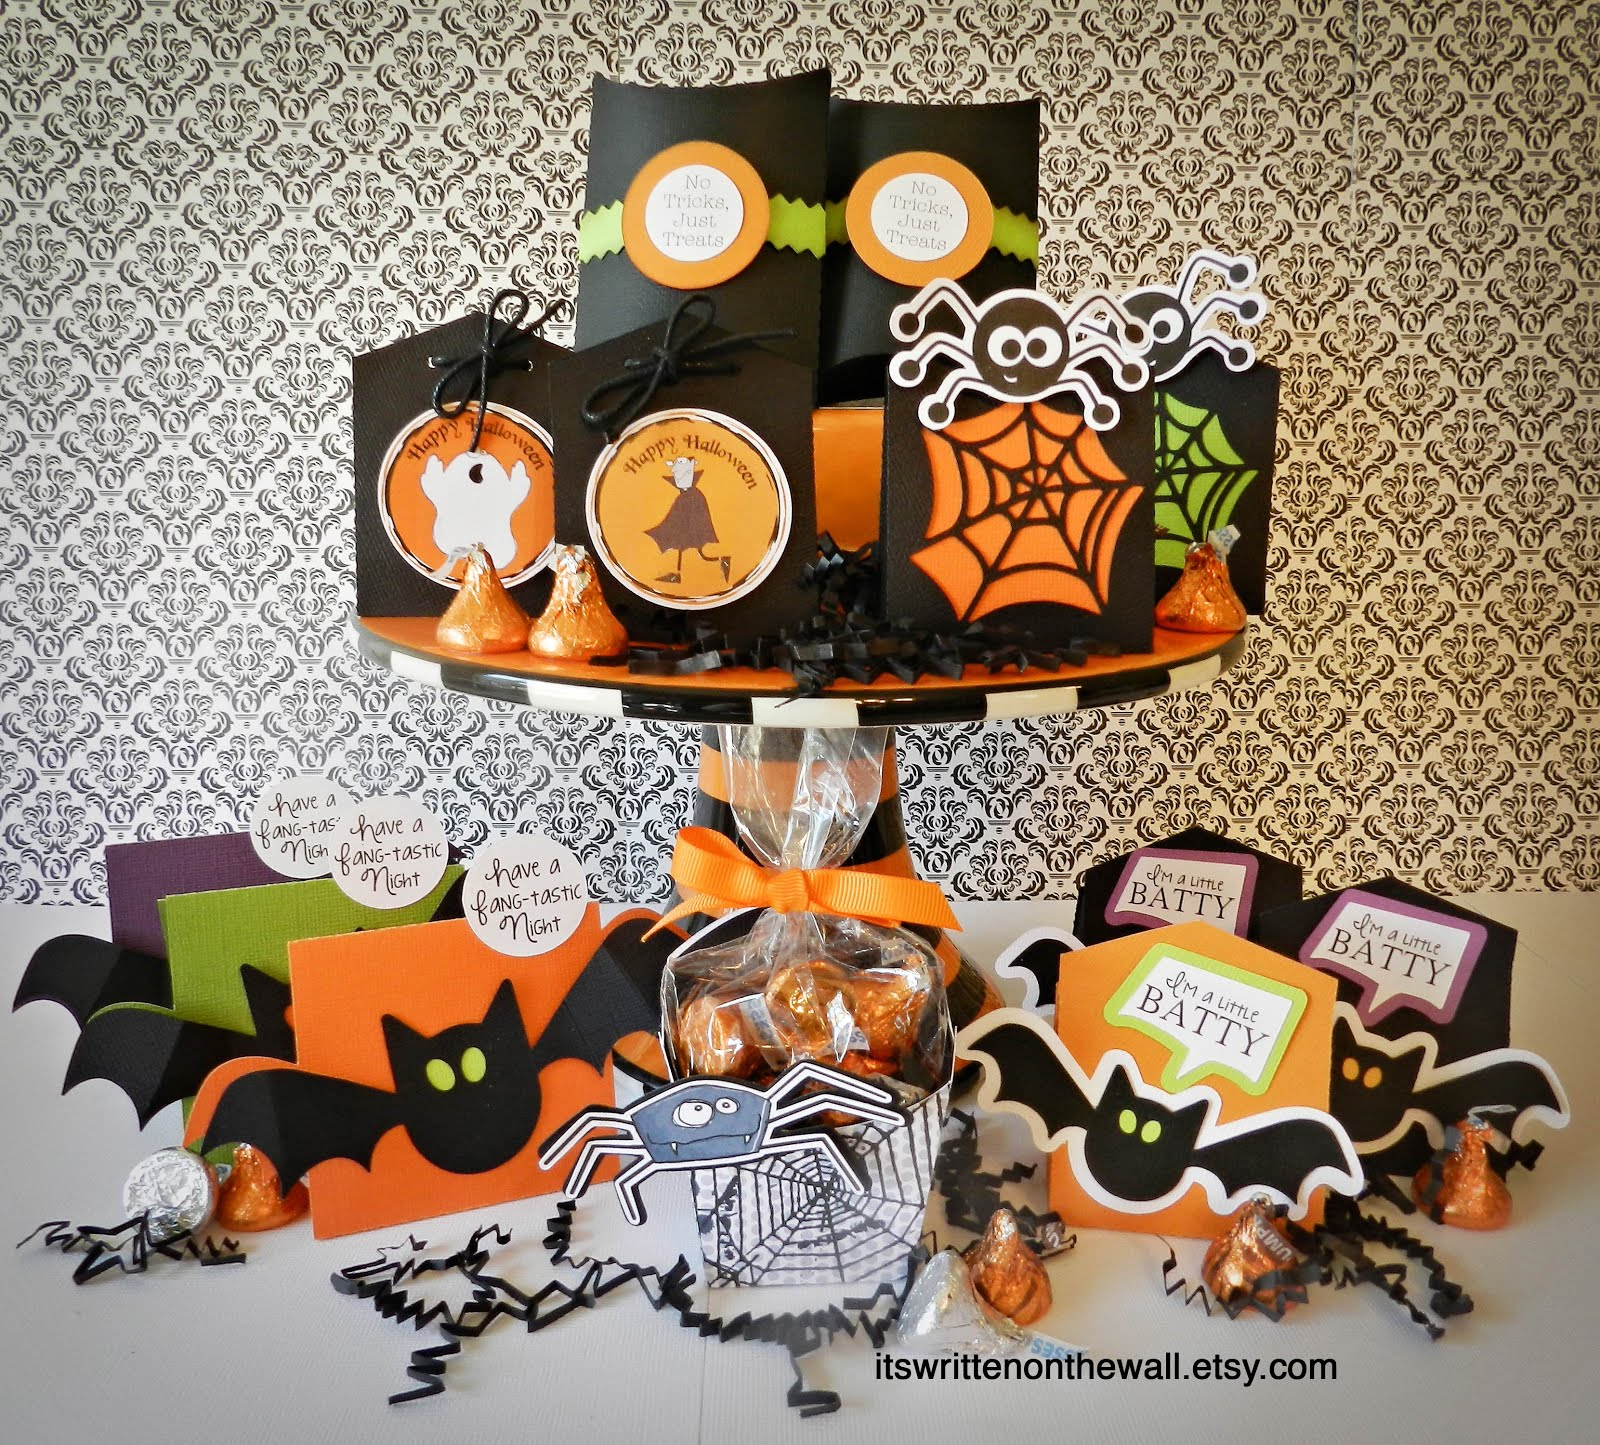 Choose from 6 Different Halloween Treat boxes